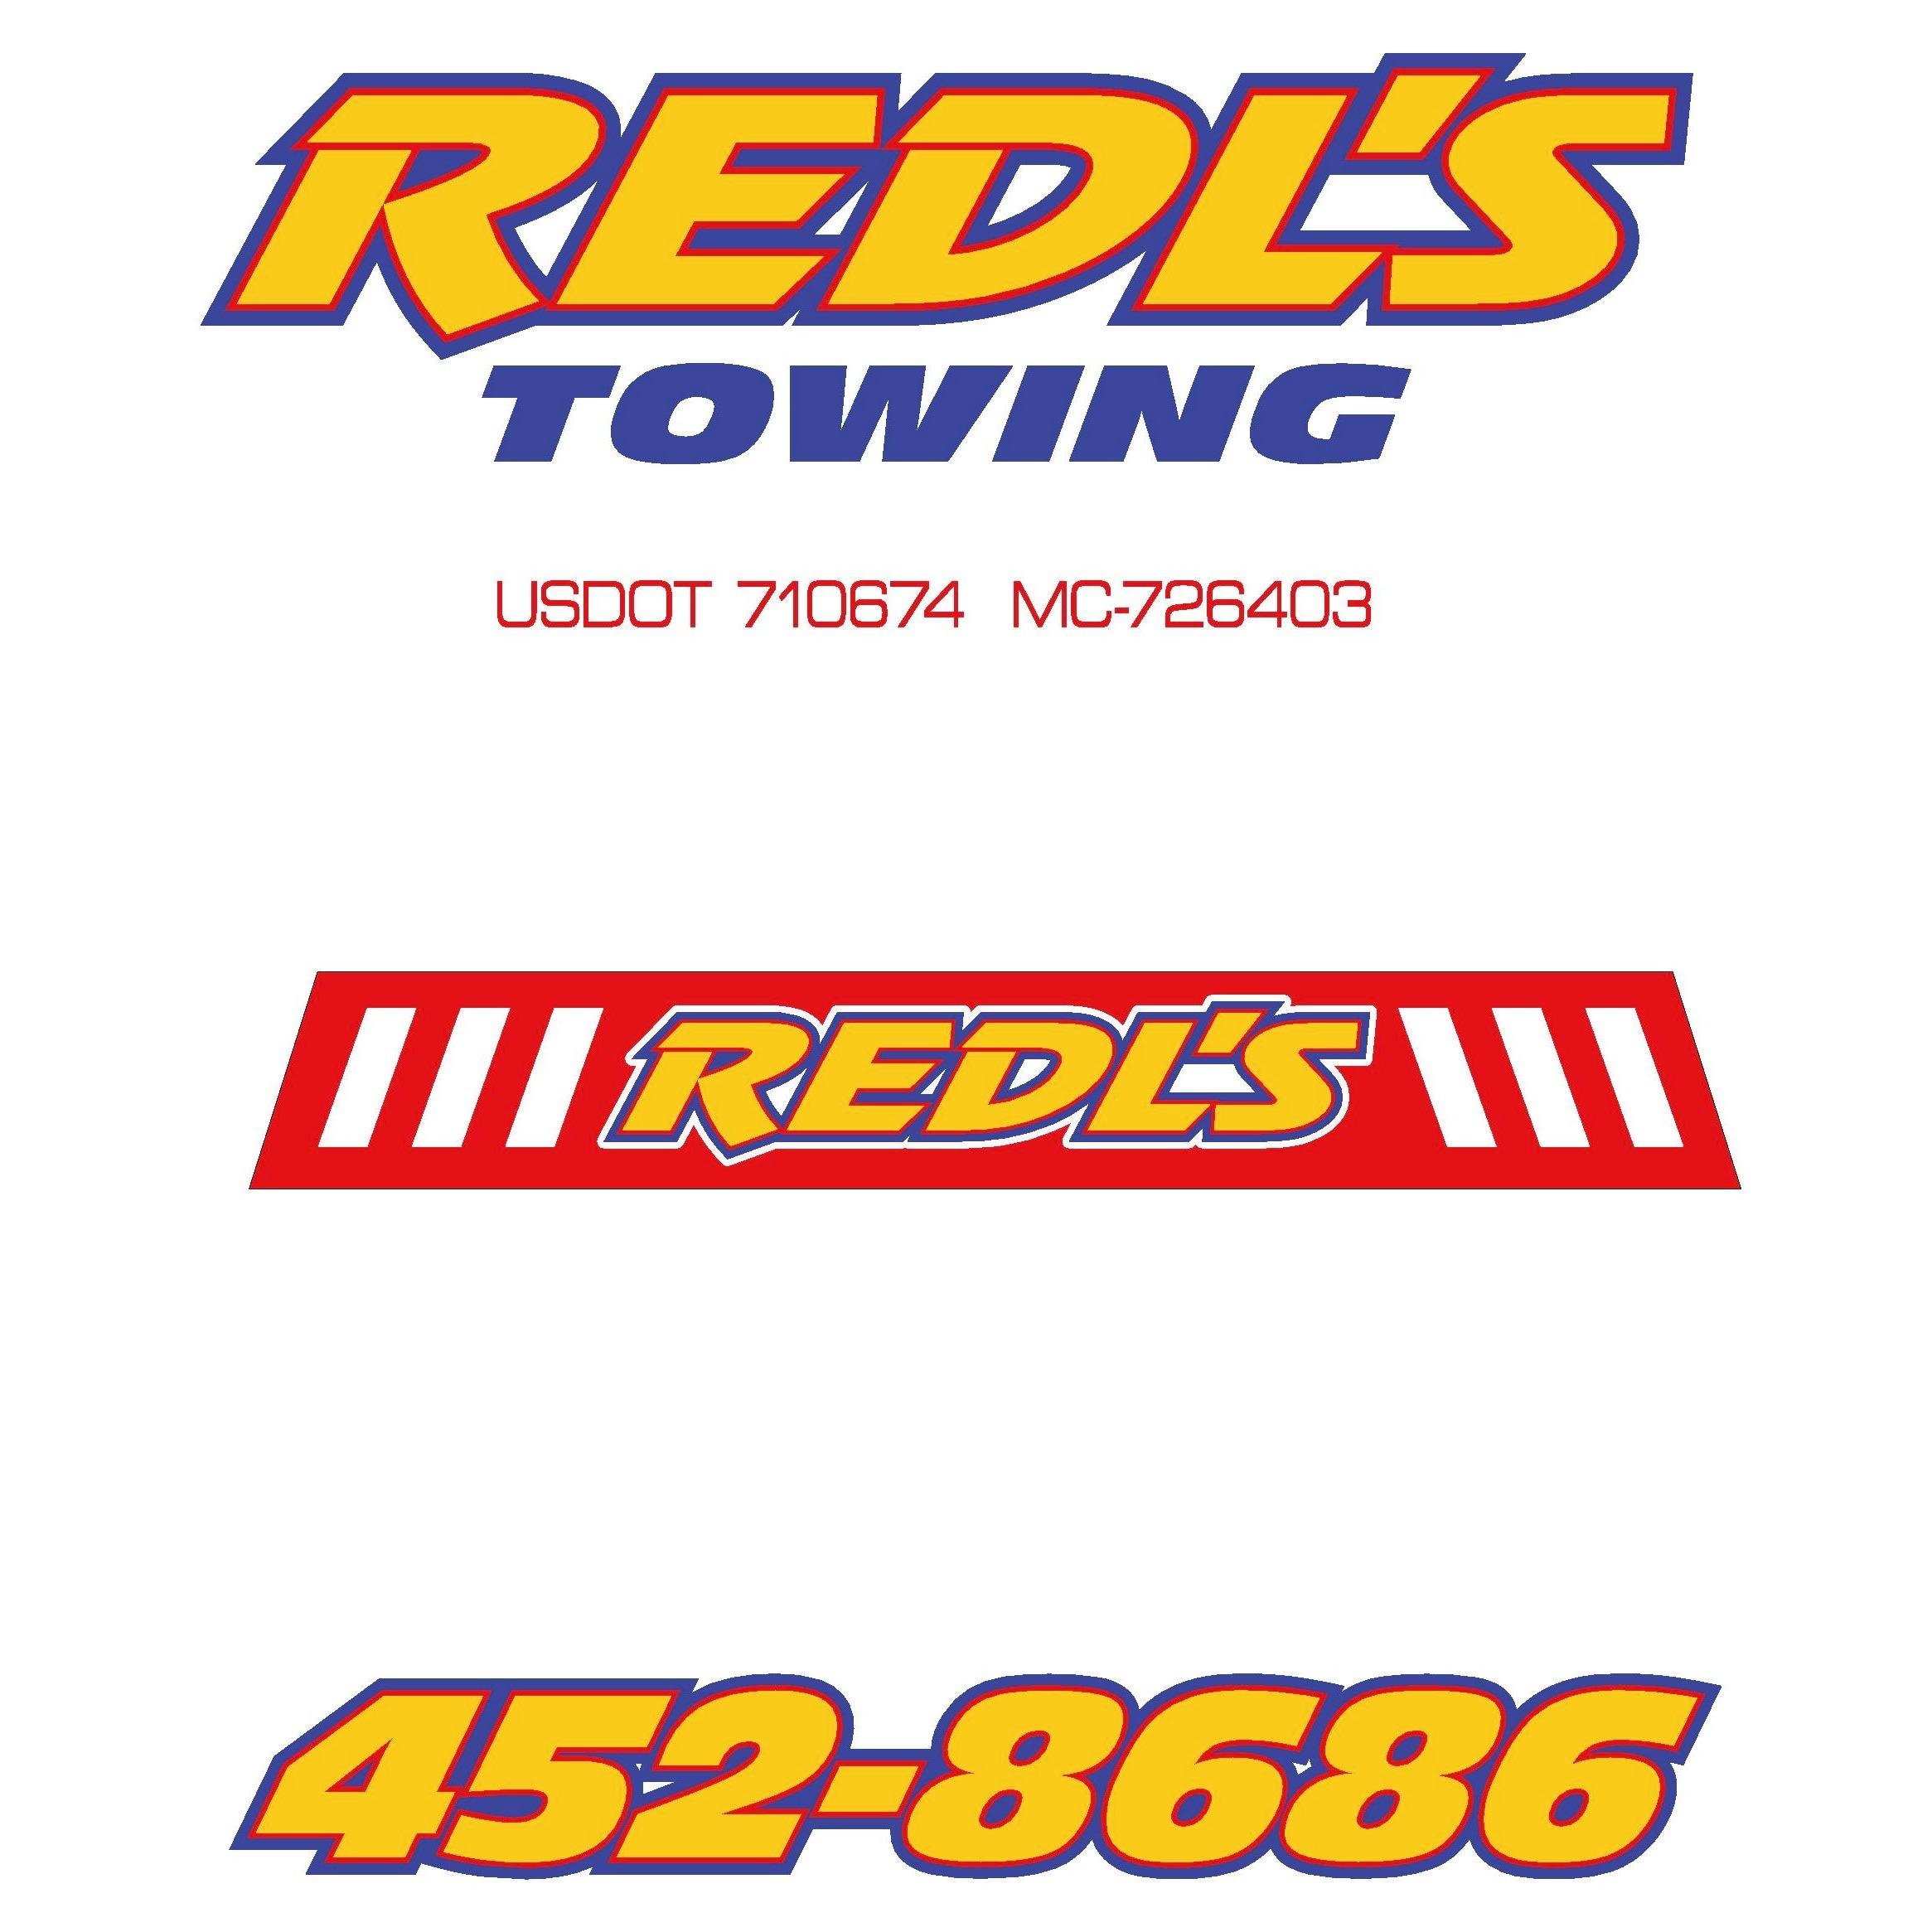 Redl's Towing